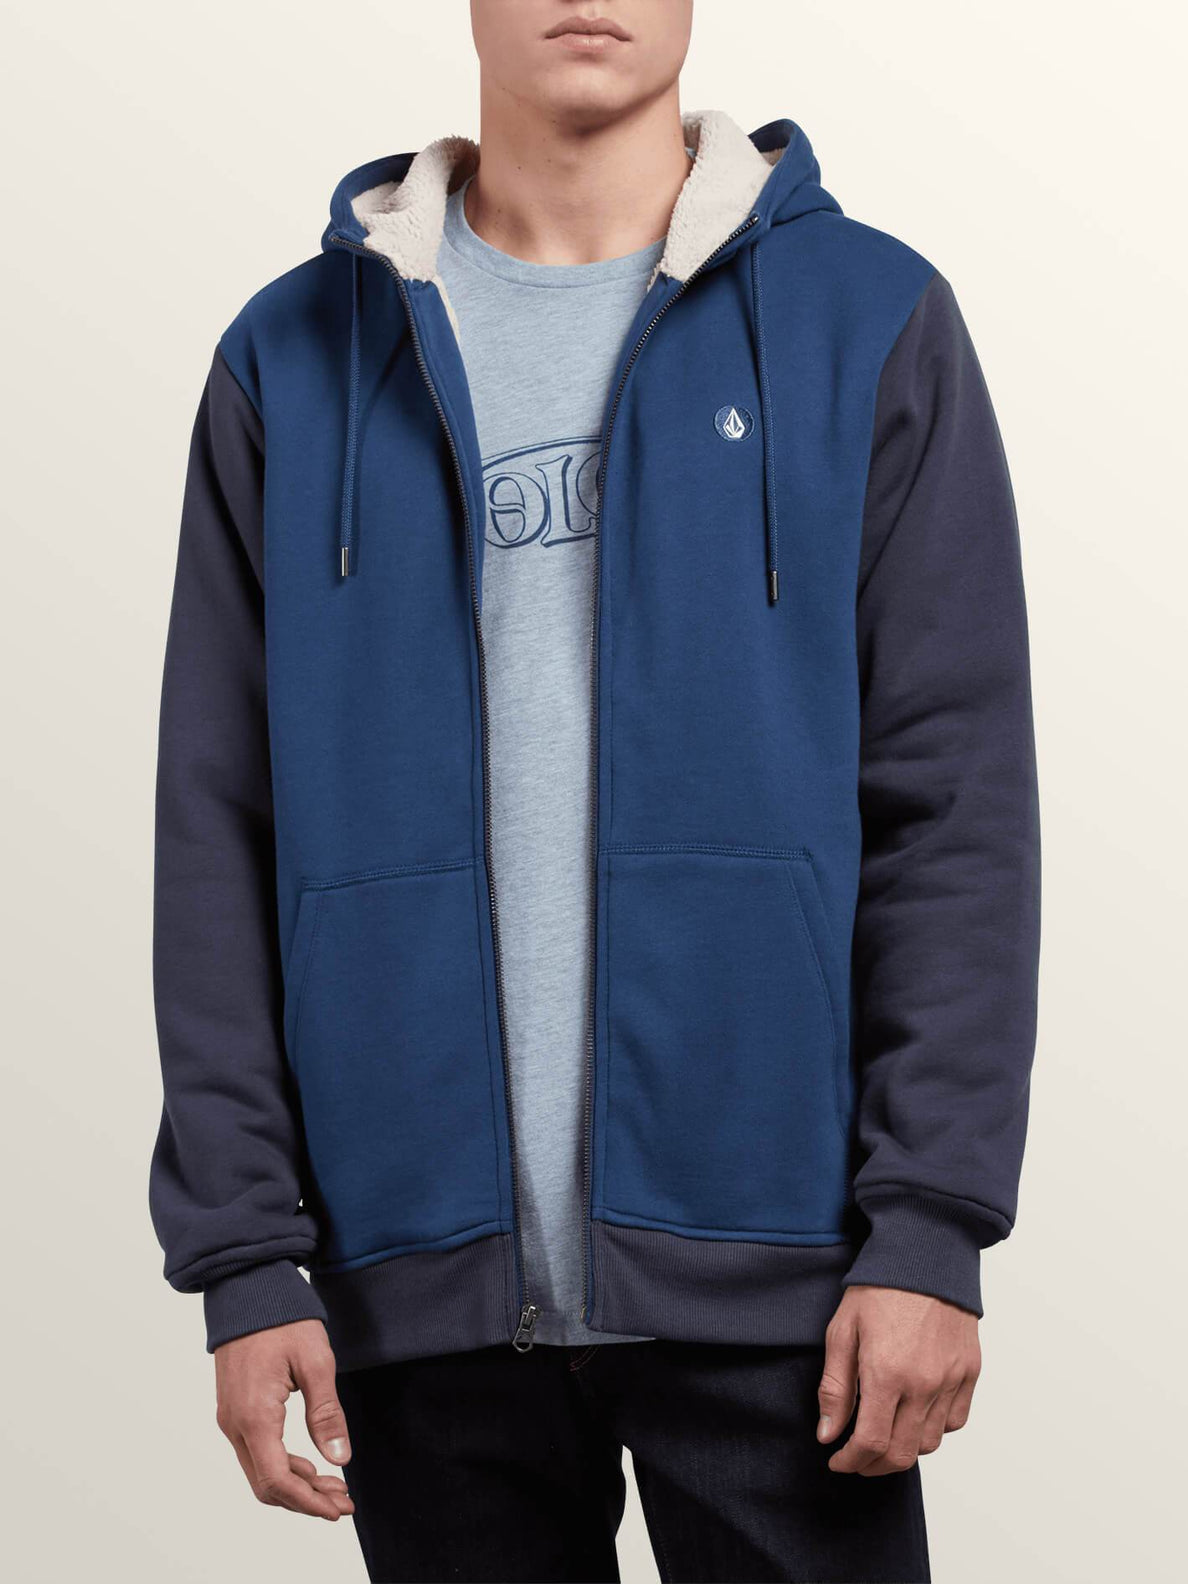 Sweat Sngl Stn Lined Zip - Matured Blue